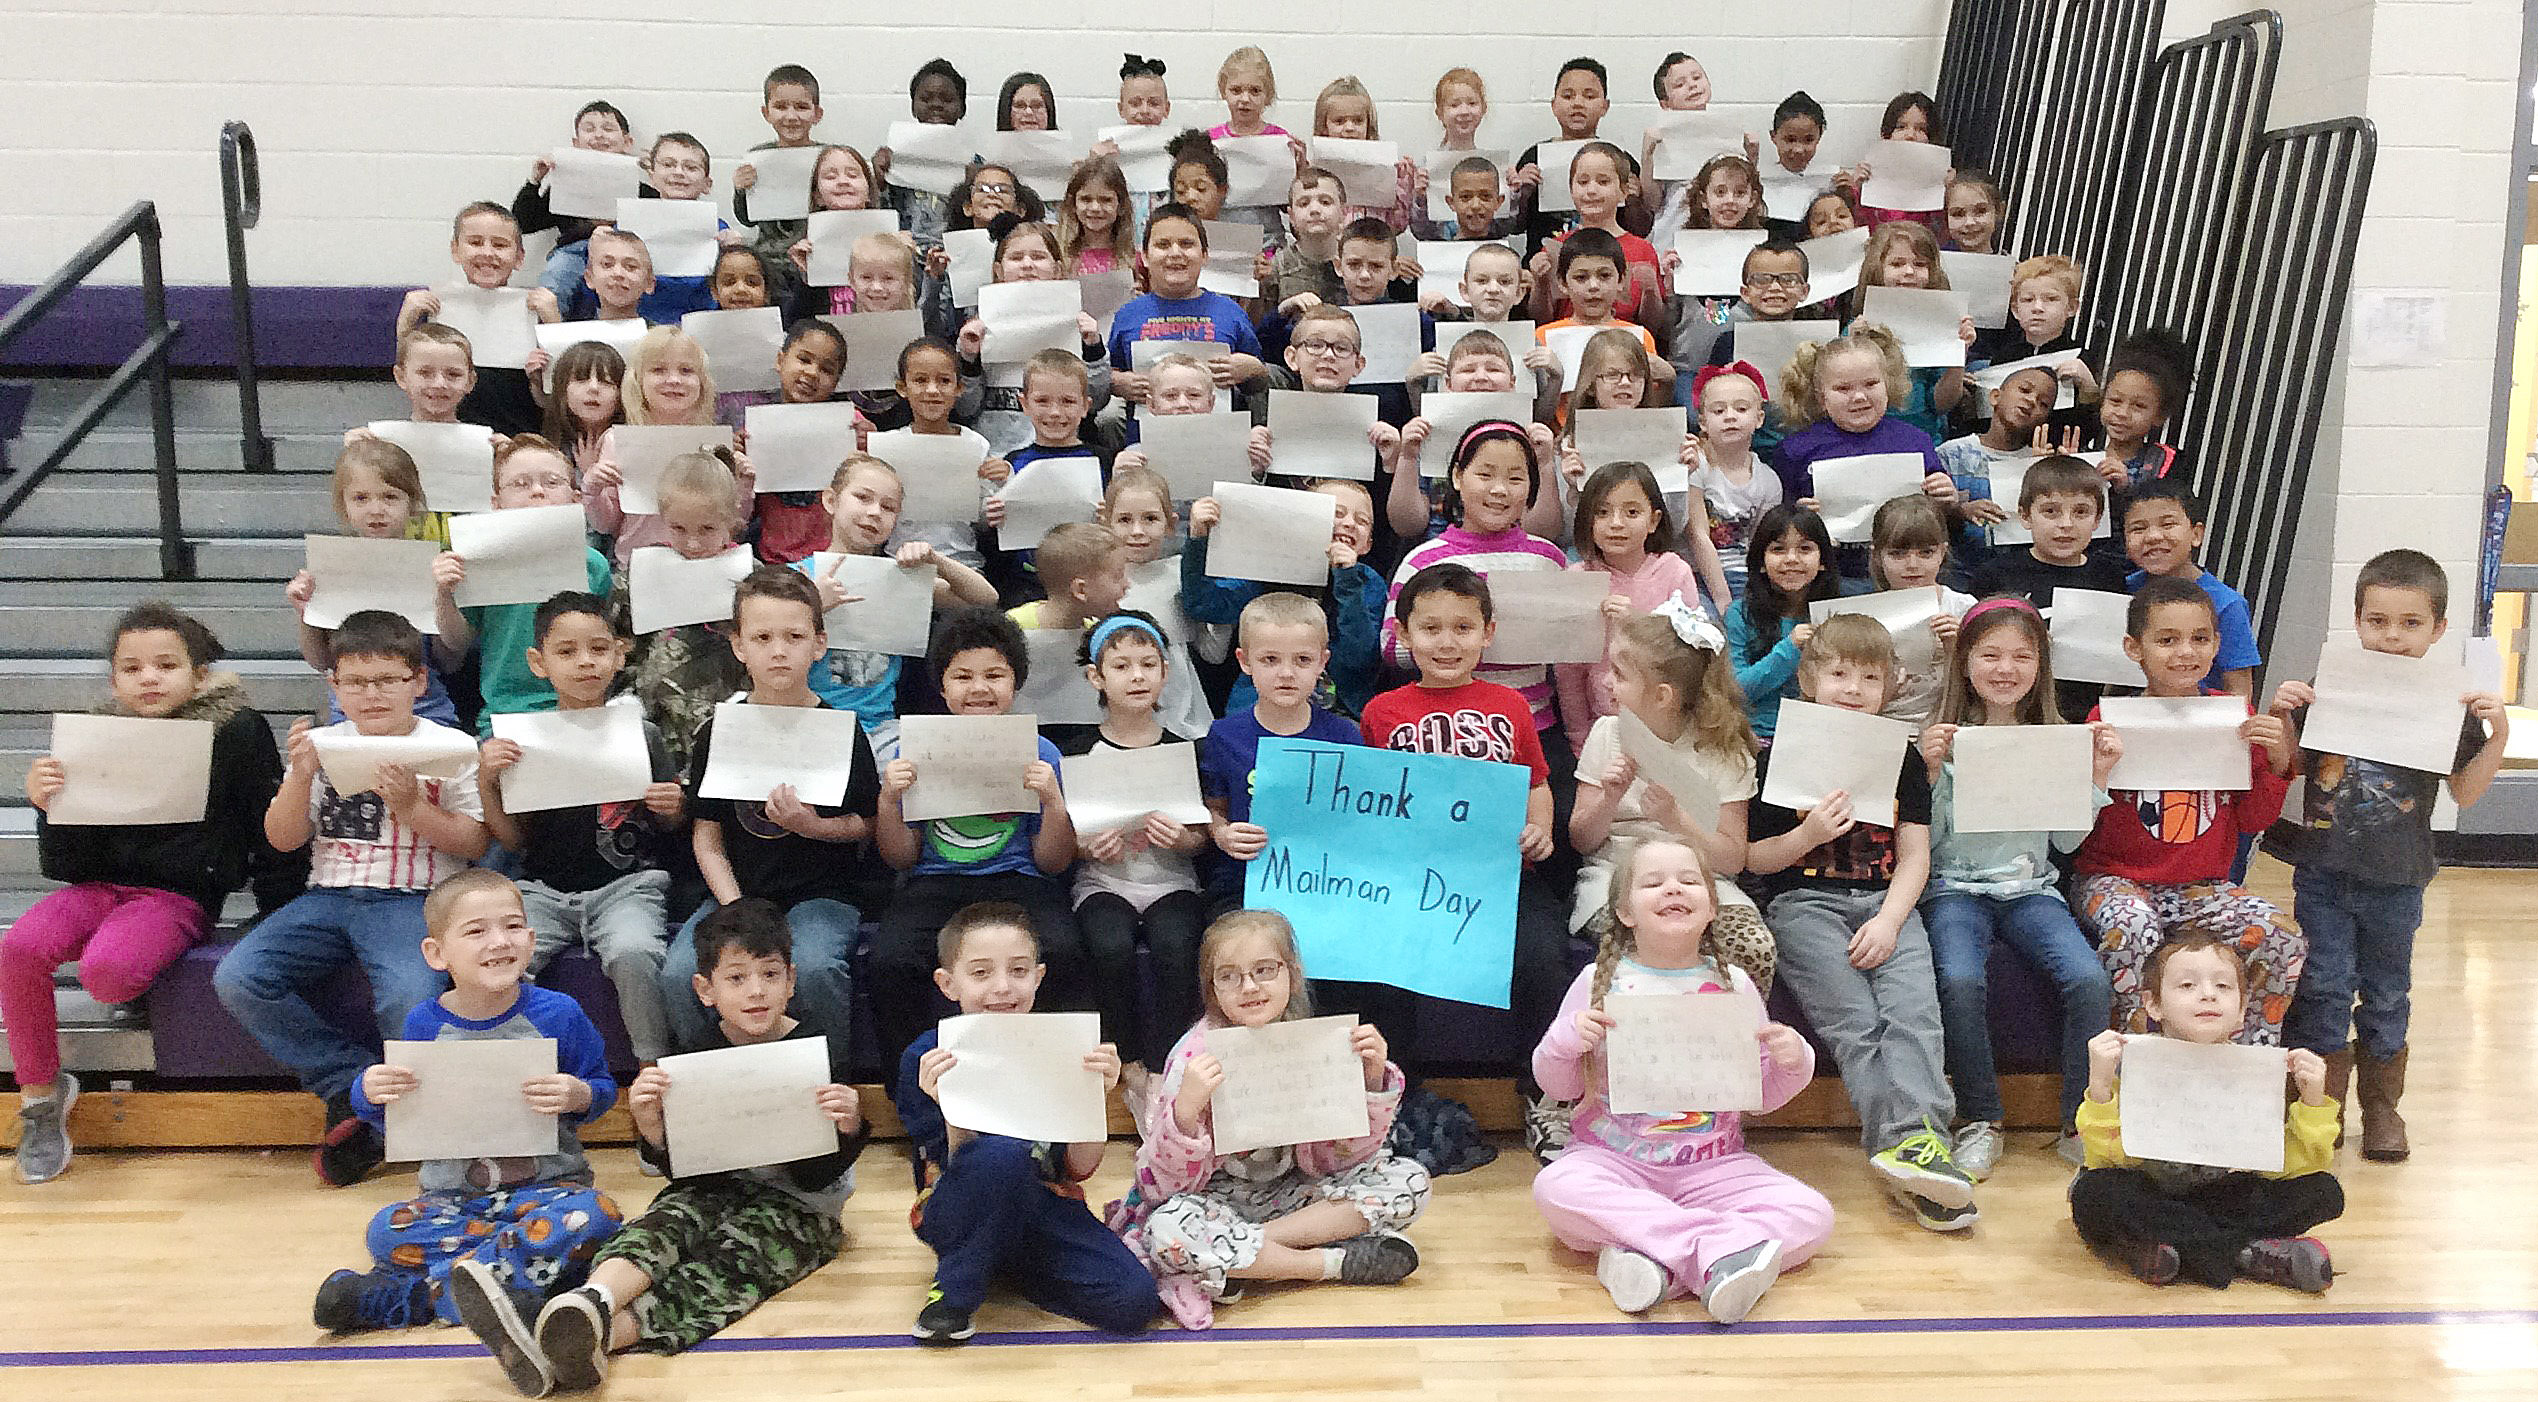 Campbellsville Elementary School first-grade students in Shirley Cox's writing classes recently wrote letters to local post office workers in honor of National Thank a Mail Carrier Day.